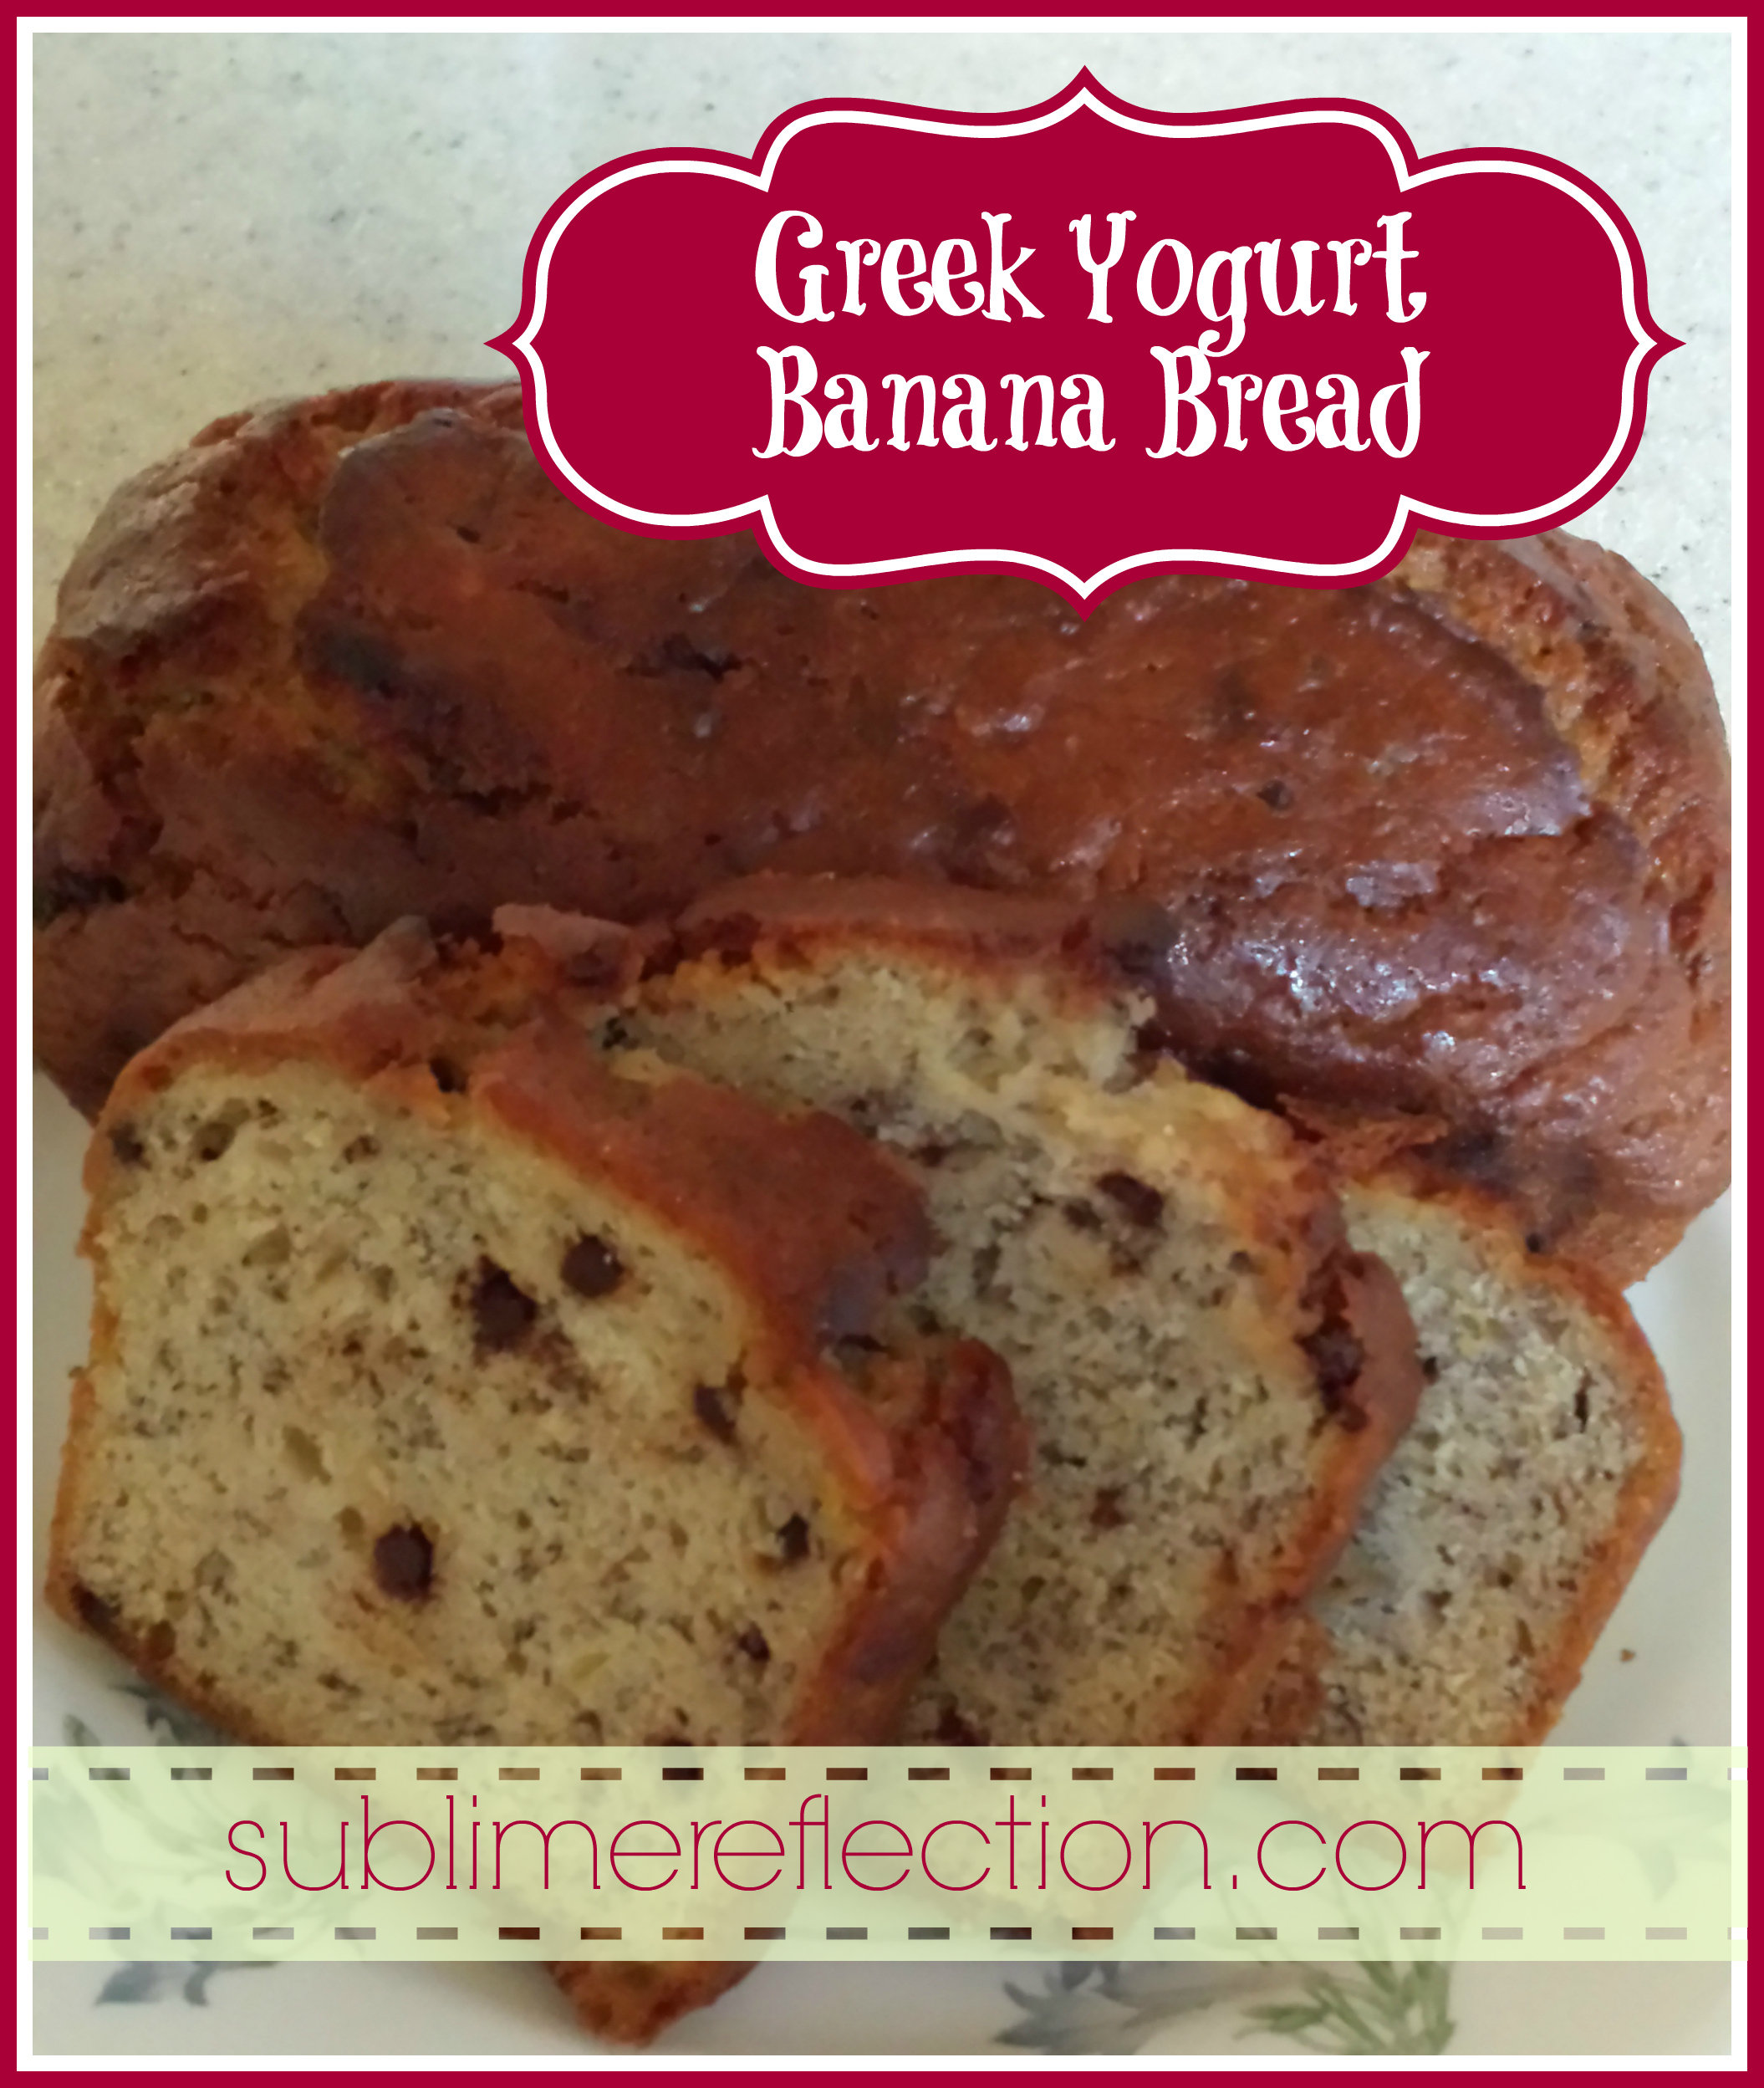 Greek Yogurt Banana Bread - Sublime Reflection